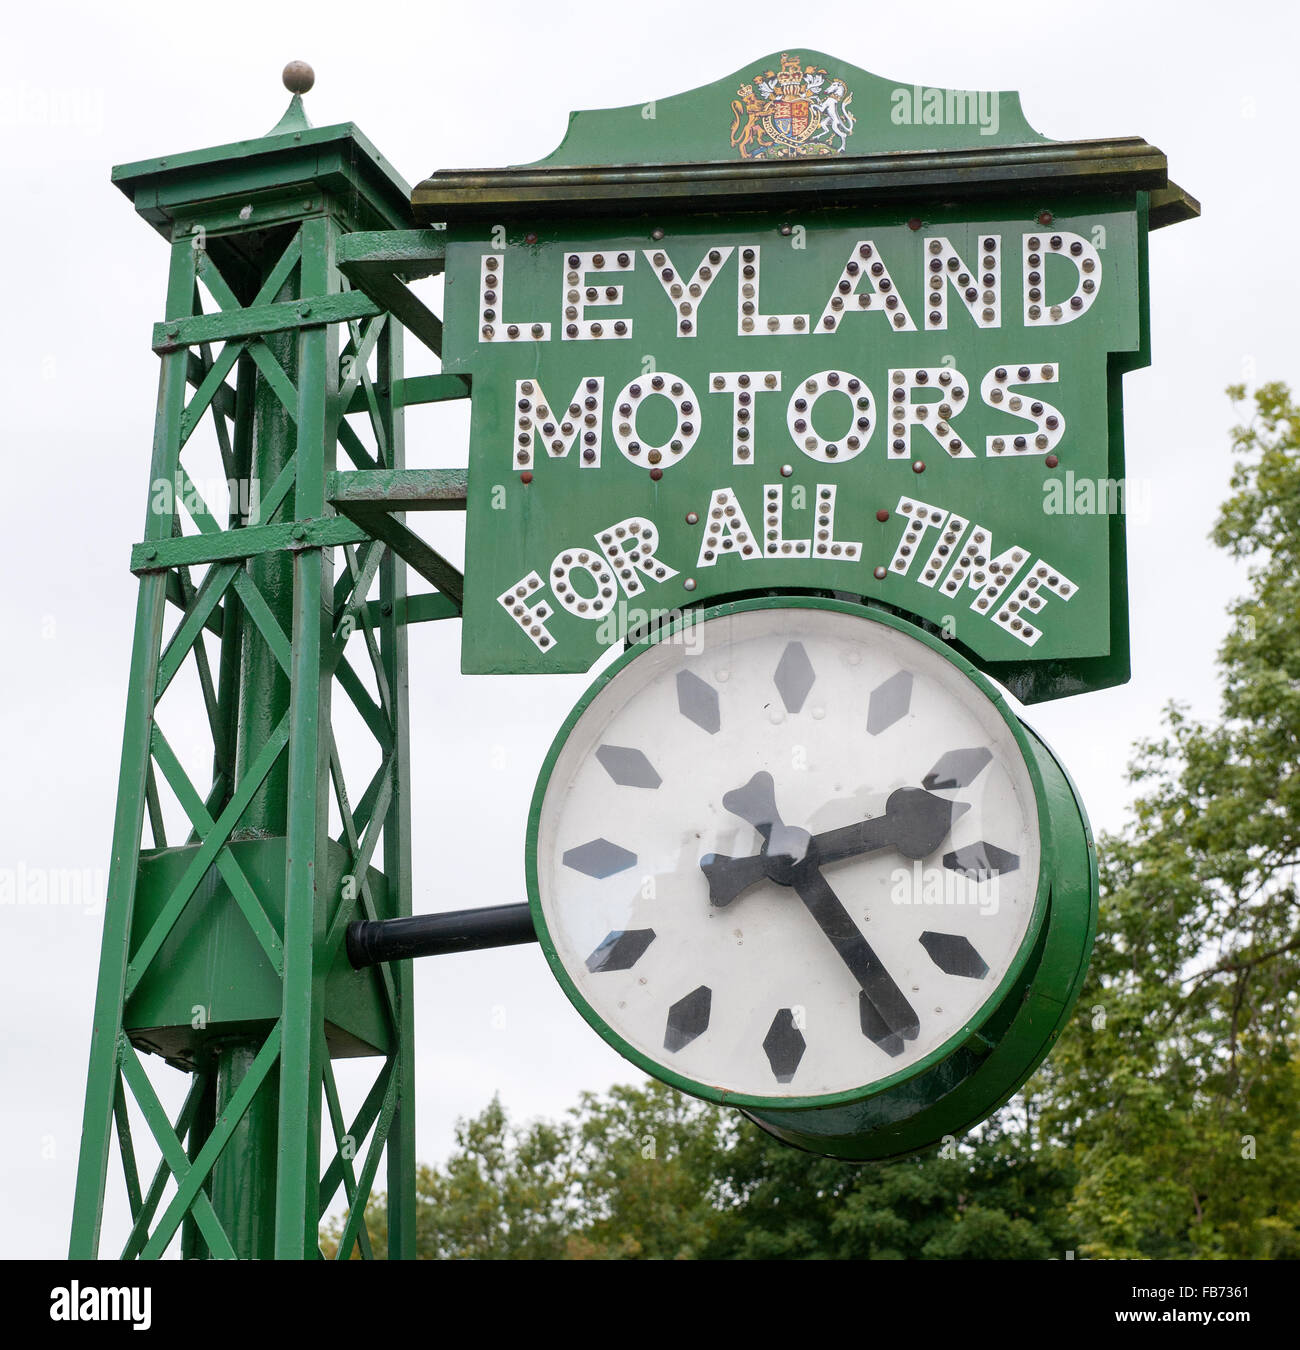 The Leyland Motors Clock, Brewery Arts Centre, Highgate, Kendal, Cumbria, England, UK. - Stock Image